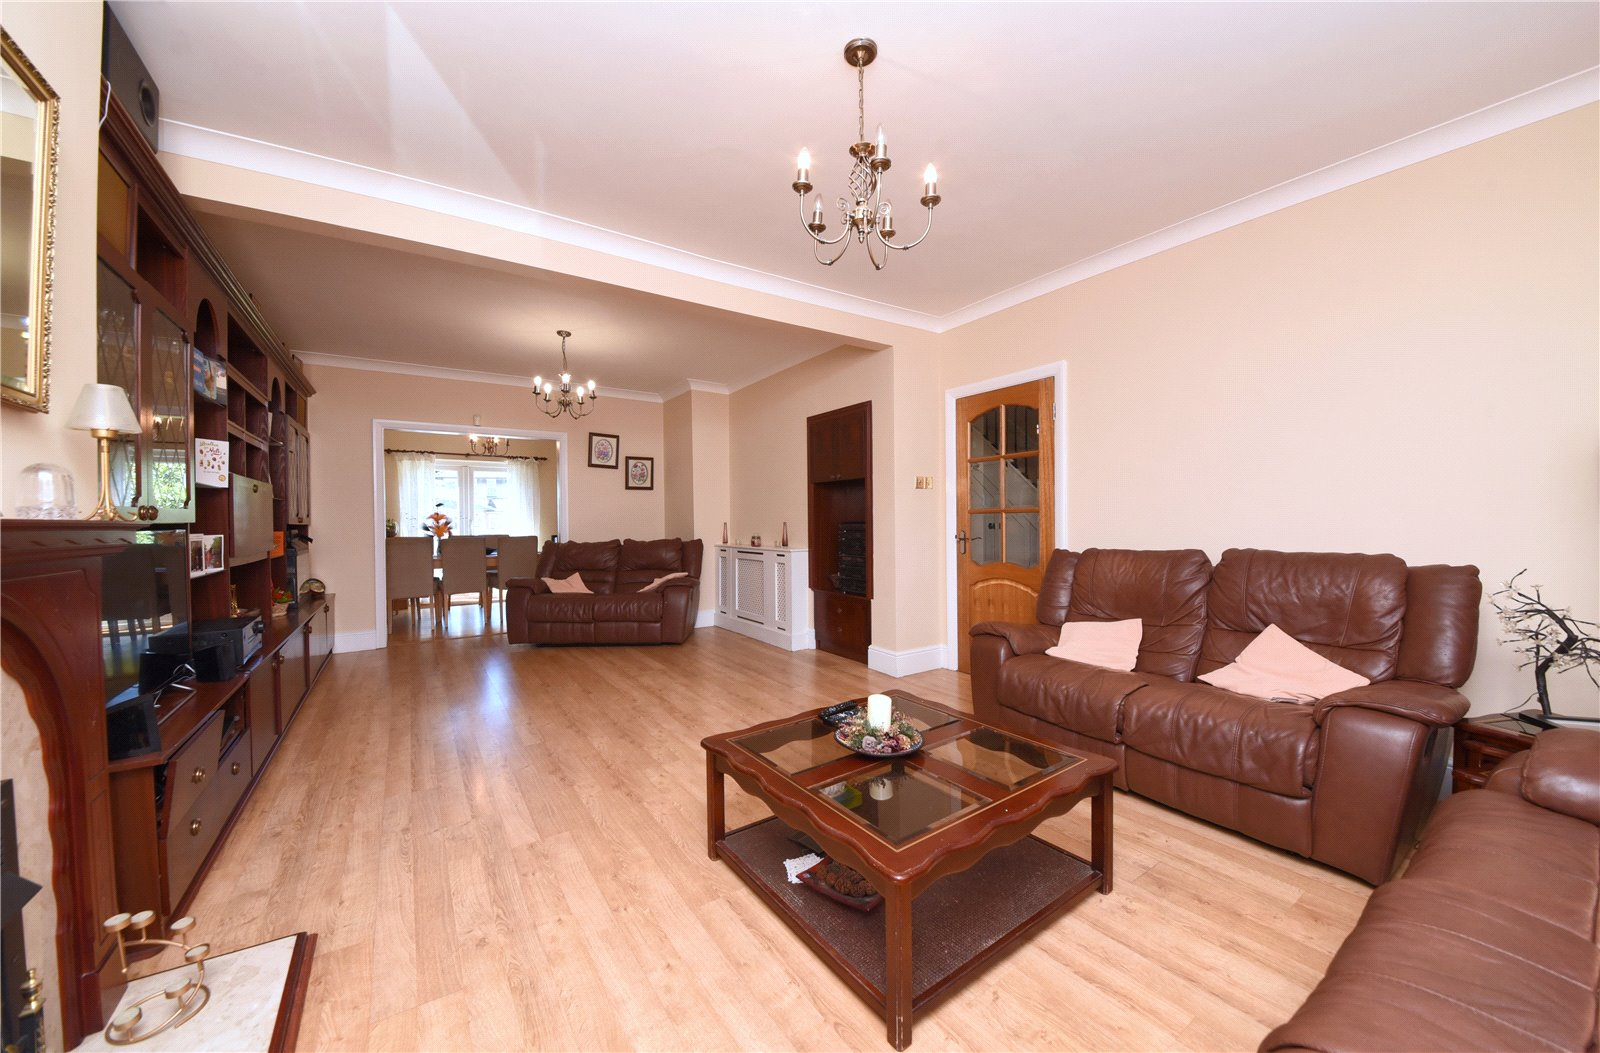 3 bed house for sale in The Fairway, Southgate  - Property Image 4